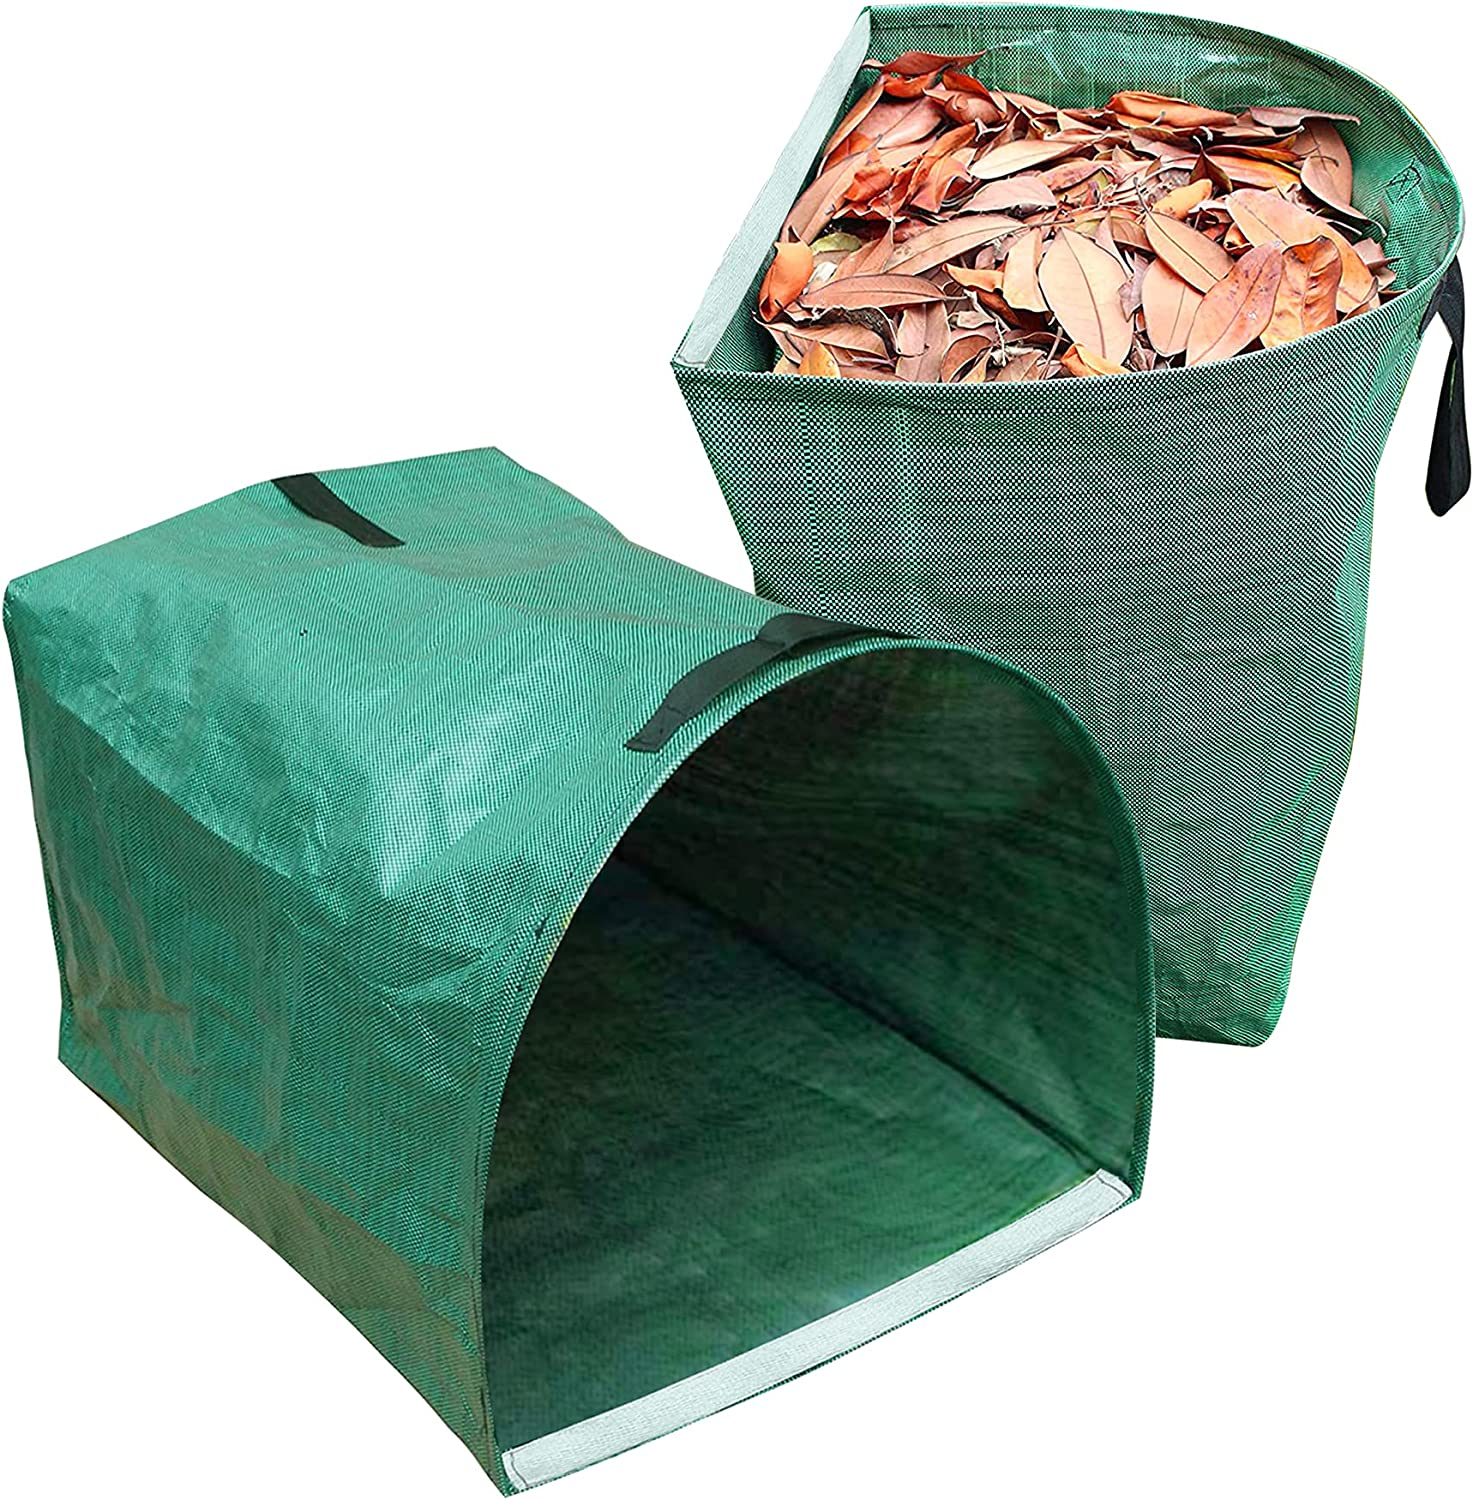 CREPRO 2 Pack 53 Gallons Reusable Garden Bags Large Yard Dustpan-Type Garden Bag for Collecting Leaves Reusable Heavy Duty Gardening Bags, Lawn Pool Garden Leaf Waste Bag